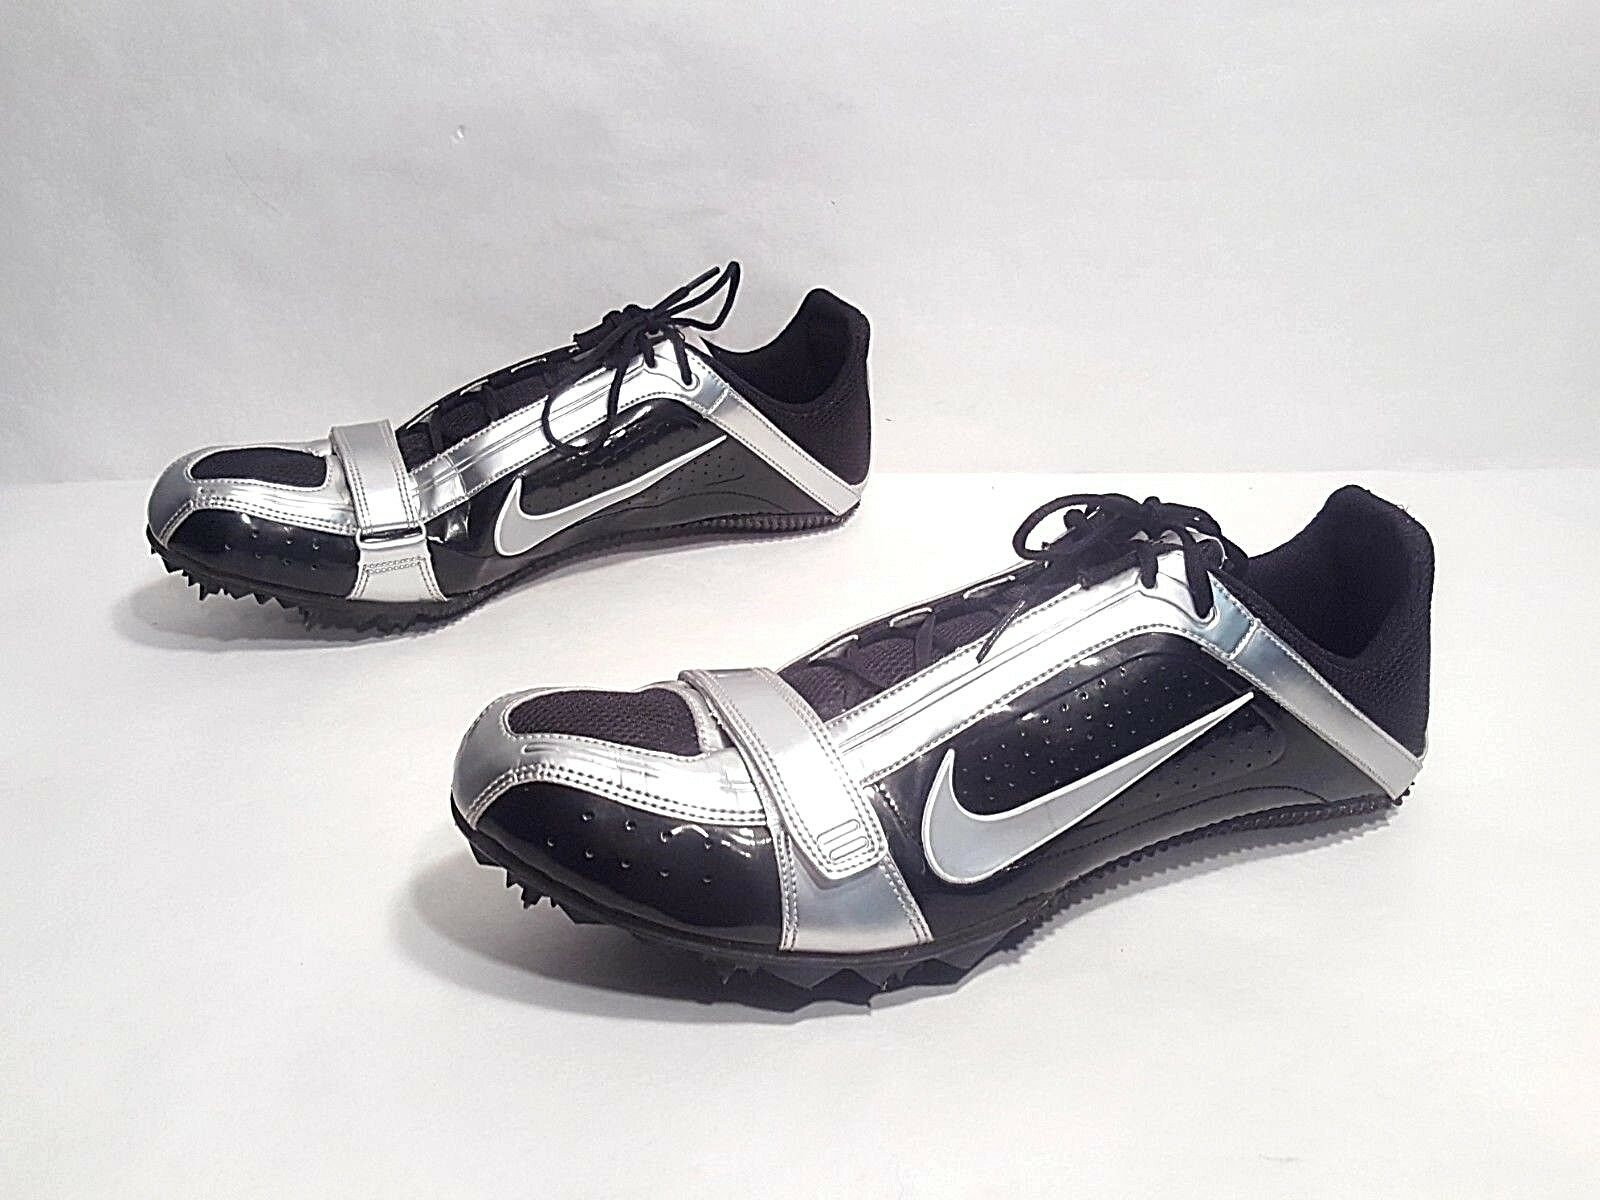 EUC Nike Bowerman Zoom Rival S Sprinter Spikes Track shoes Black Silver Size 12